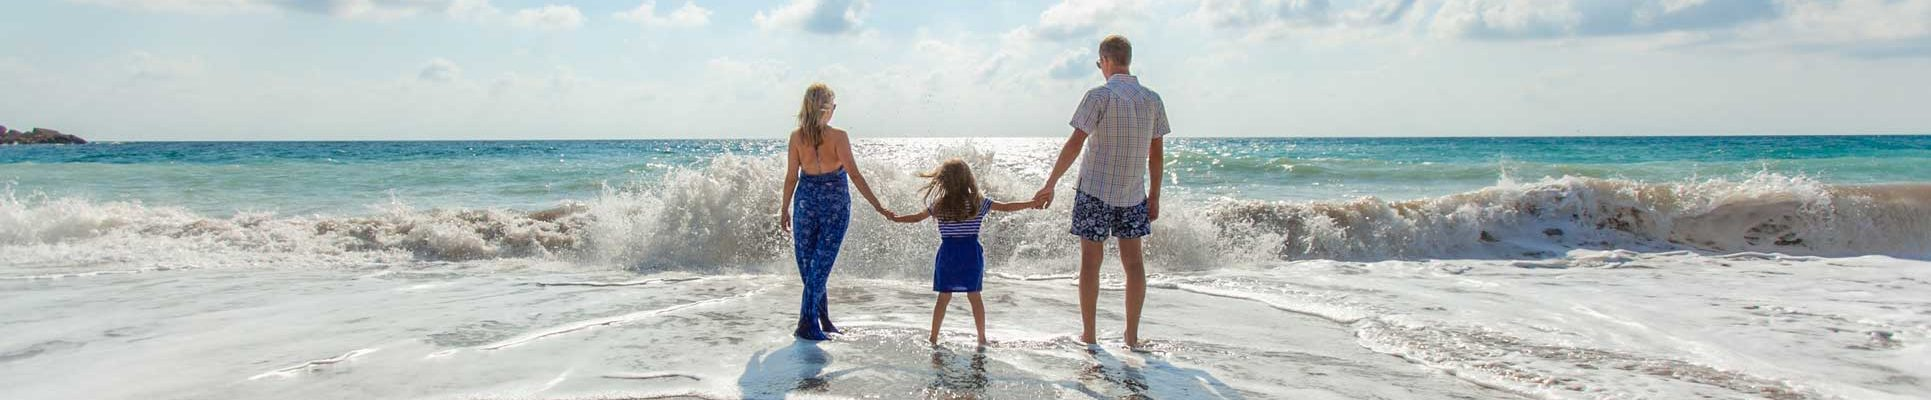 Family-at-the-beach-certified-autism-center-travel-destination